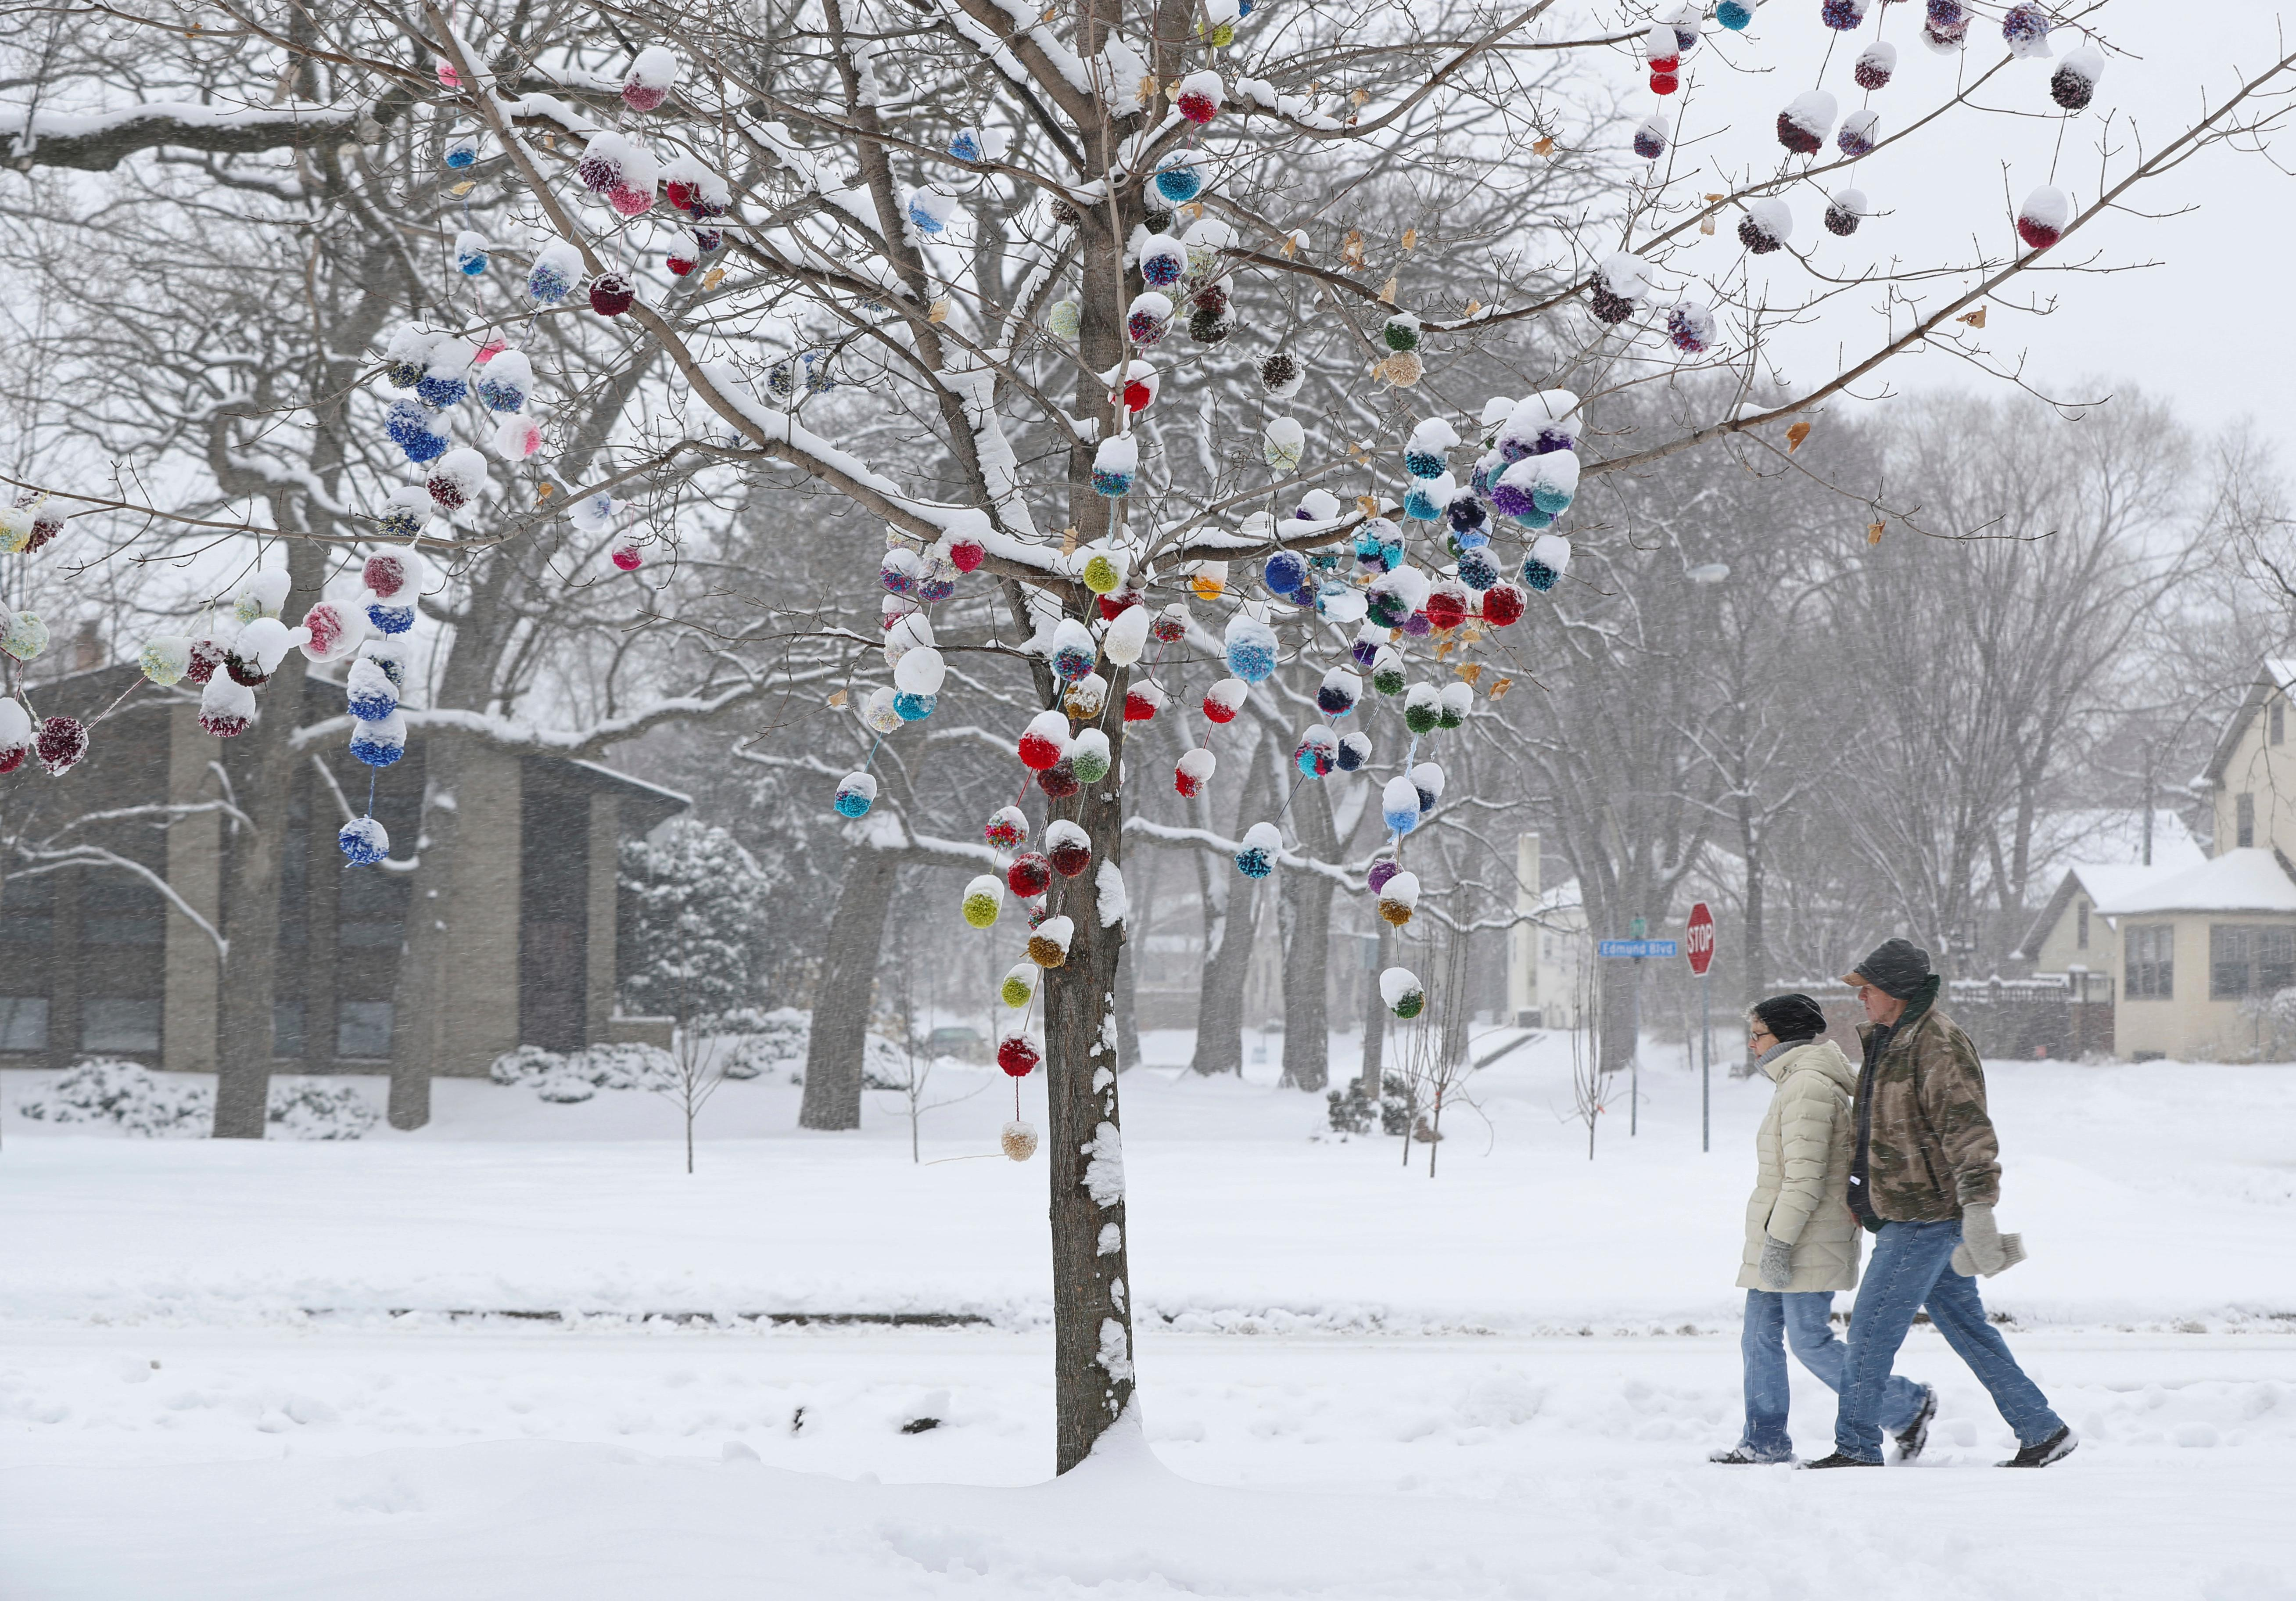 Snow covers the tops of knitted yarn pom-poms decorating a tree along West River Road in Minneapolis as a couple walked by on a snowy Tuesday, April 3, 2018. (Shari L. Gross/Star Tribune via AP)